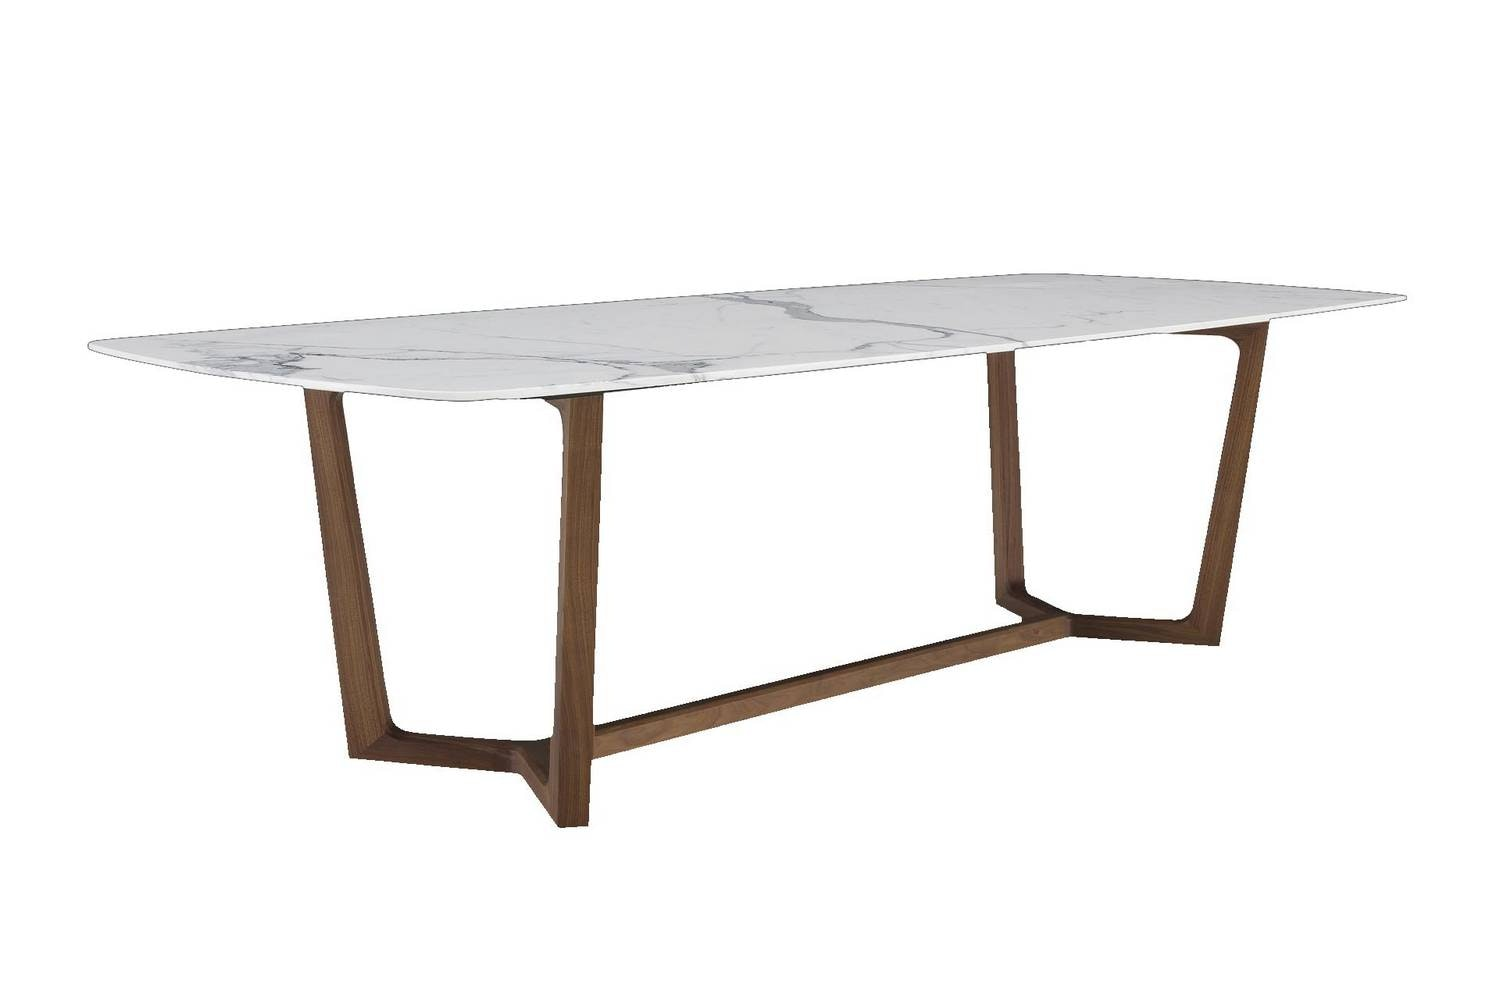 Concorde Table by Emmanuel Gallina for Poliform